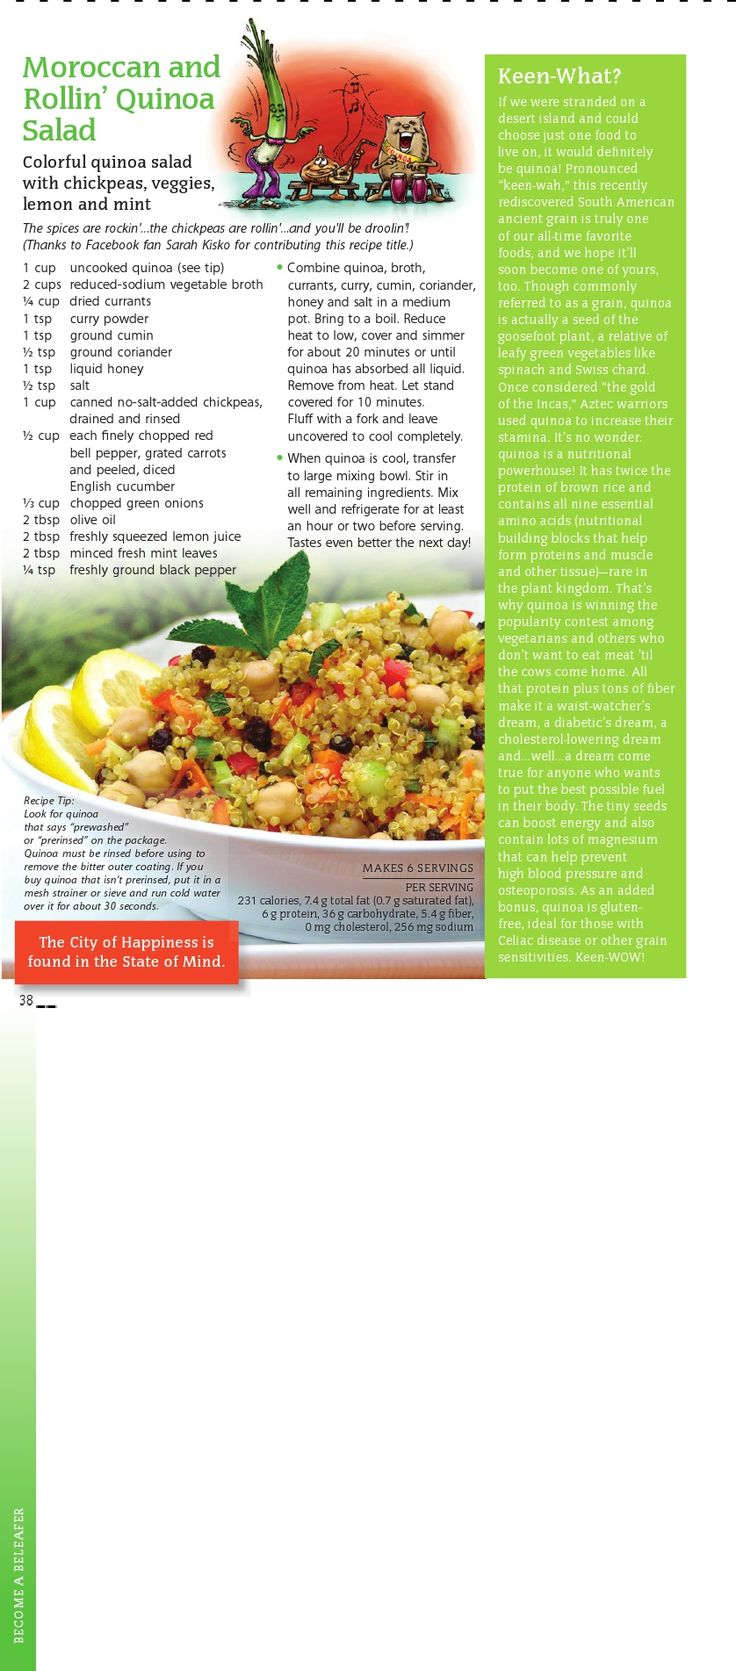 Moroccan and Rollin' Quinoa Salad from LooneySpoons 2. I used 1 1/2 cups broth